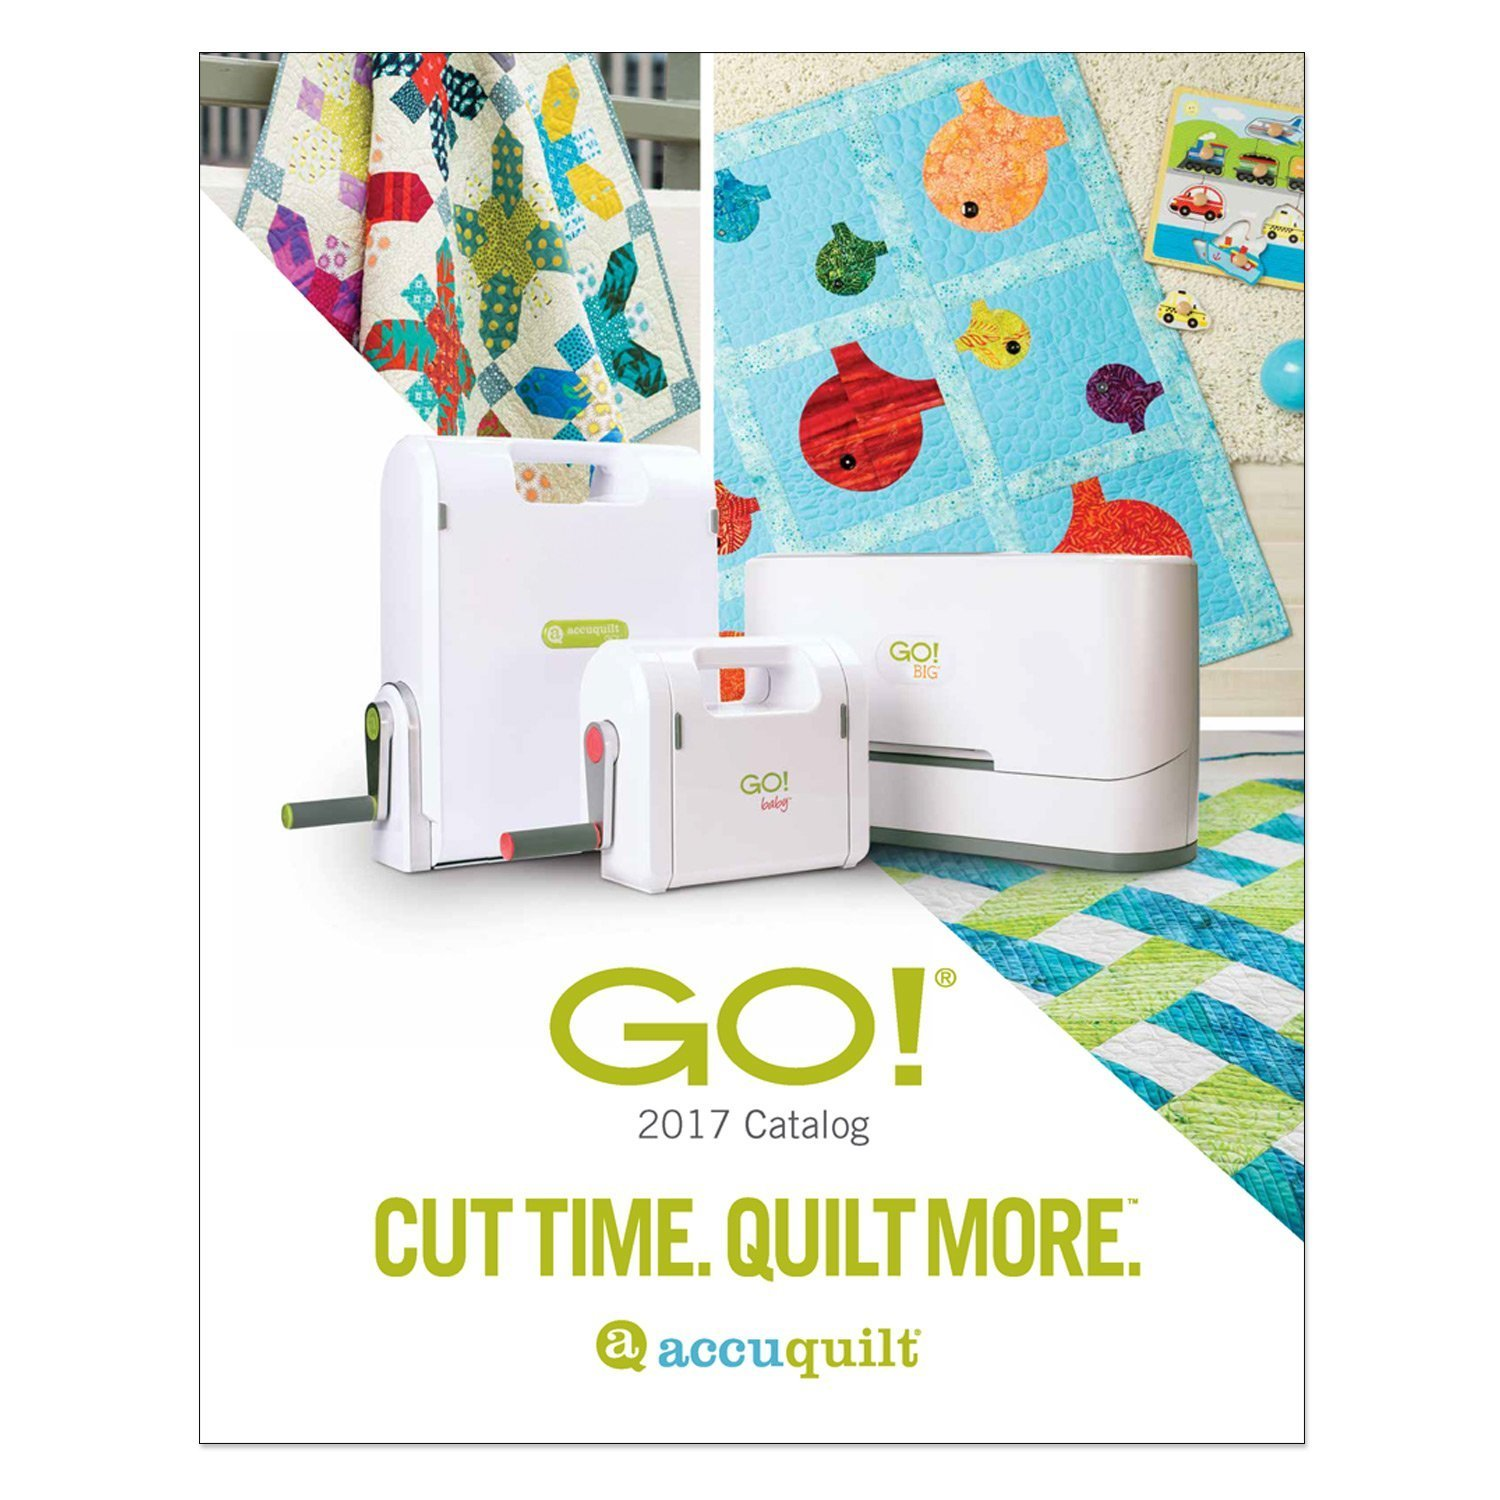 View/Download GO! Product Brochure